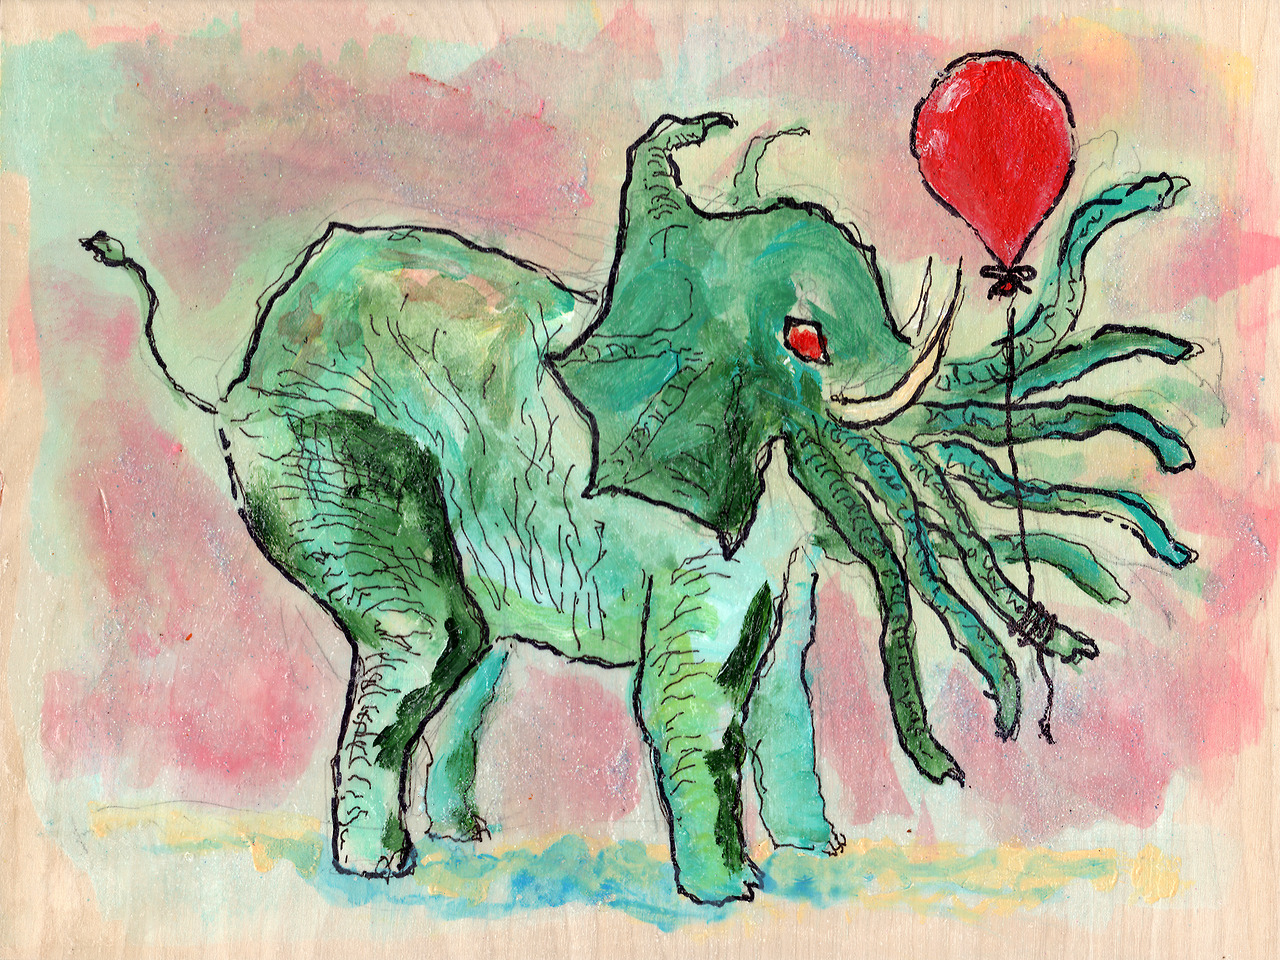 11/11/13 -  Cthulhephant with Red Balloon.    Balloons make everything a bit less scary. Except for clowns. Clowns are creepy regardless.   Anyway, my kickstarter is still going on. I'd love it if you could take a look at it when you get the chance. My mom's in the video. So there's that.   http://www.kickstarter.com/projects/taylorwinder/the-art-book-of-the-year